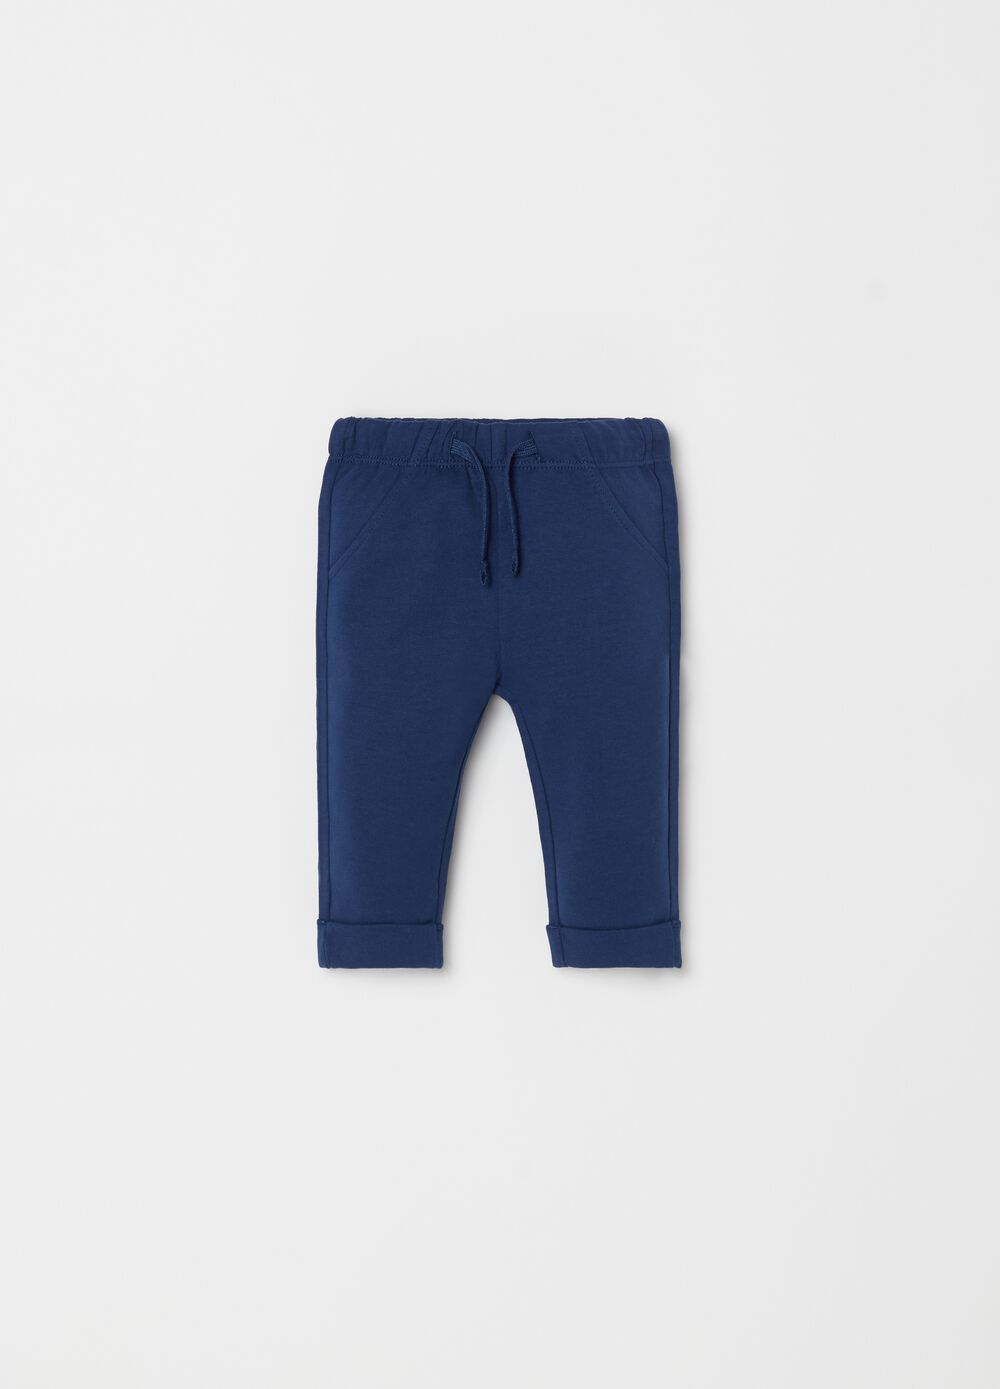 Pantaloni in felpa biocotton con coulisse